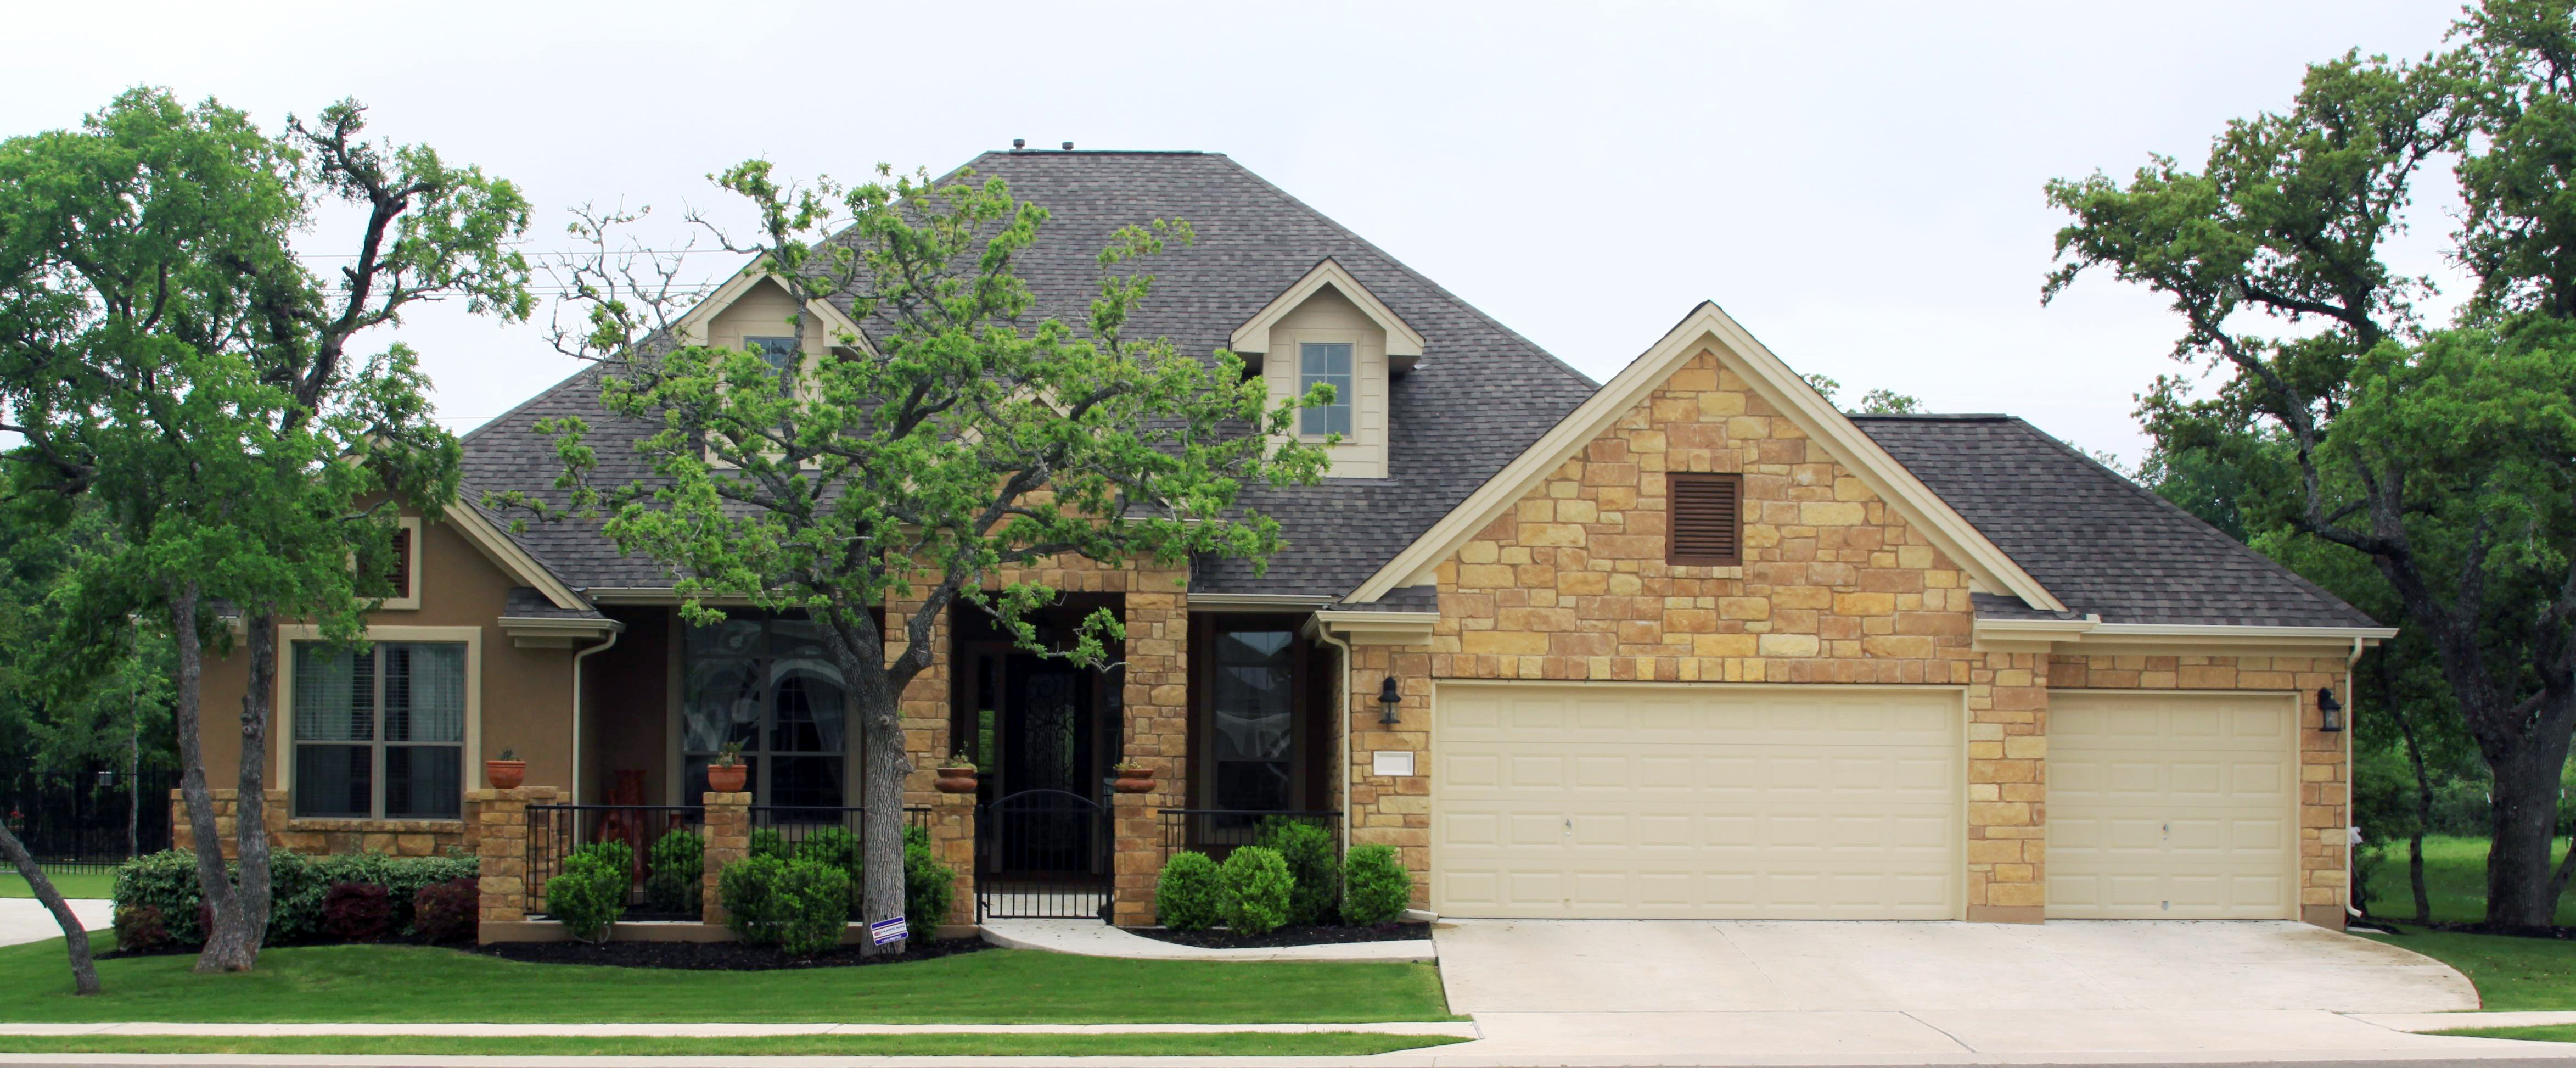 Exterior house designs with stone